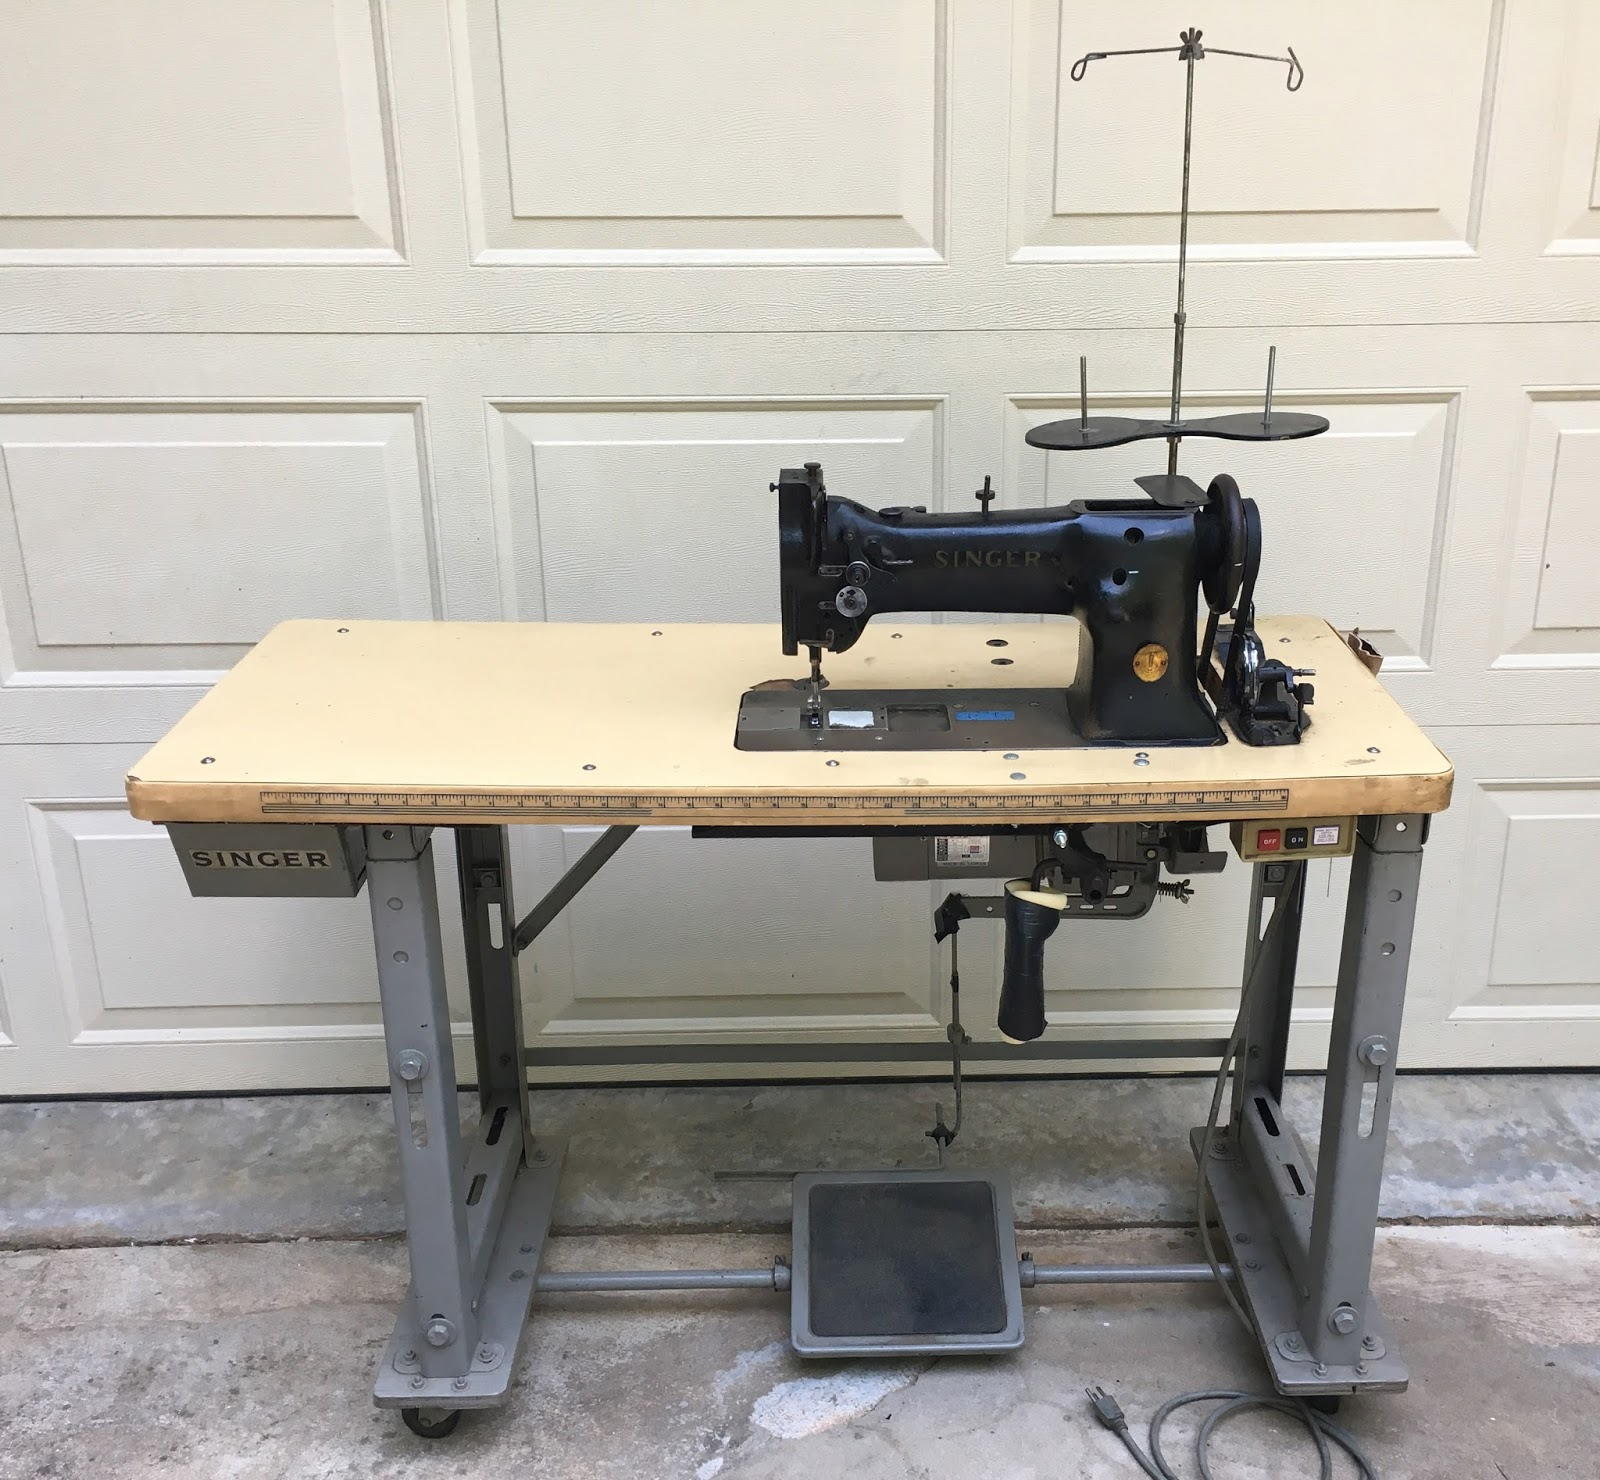 Singer 111w152 Industrial Sewing Machine Project | The Project Lady